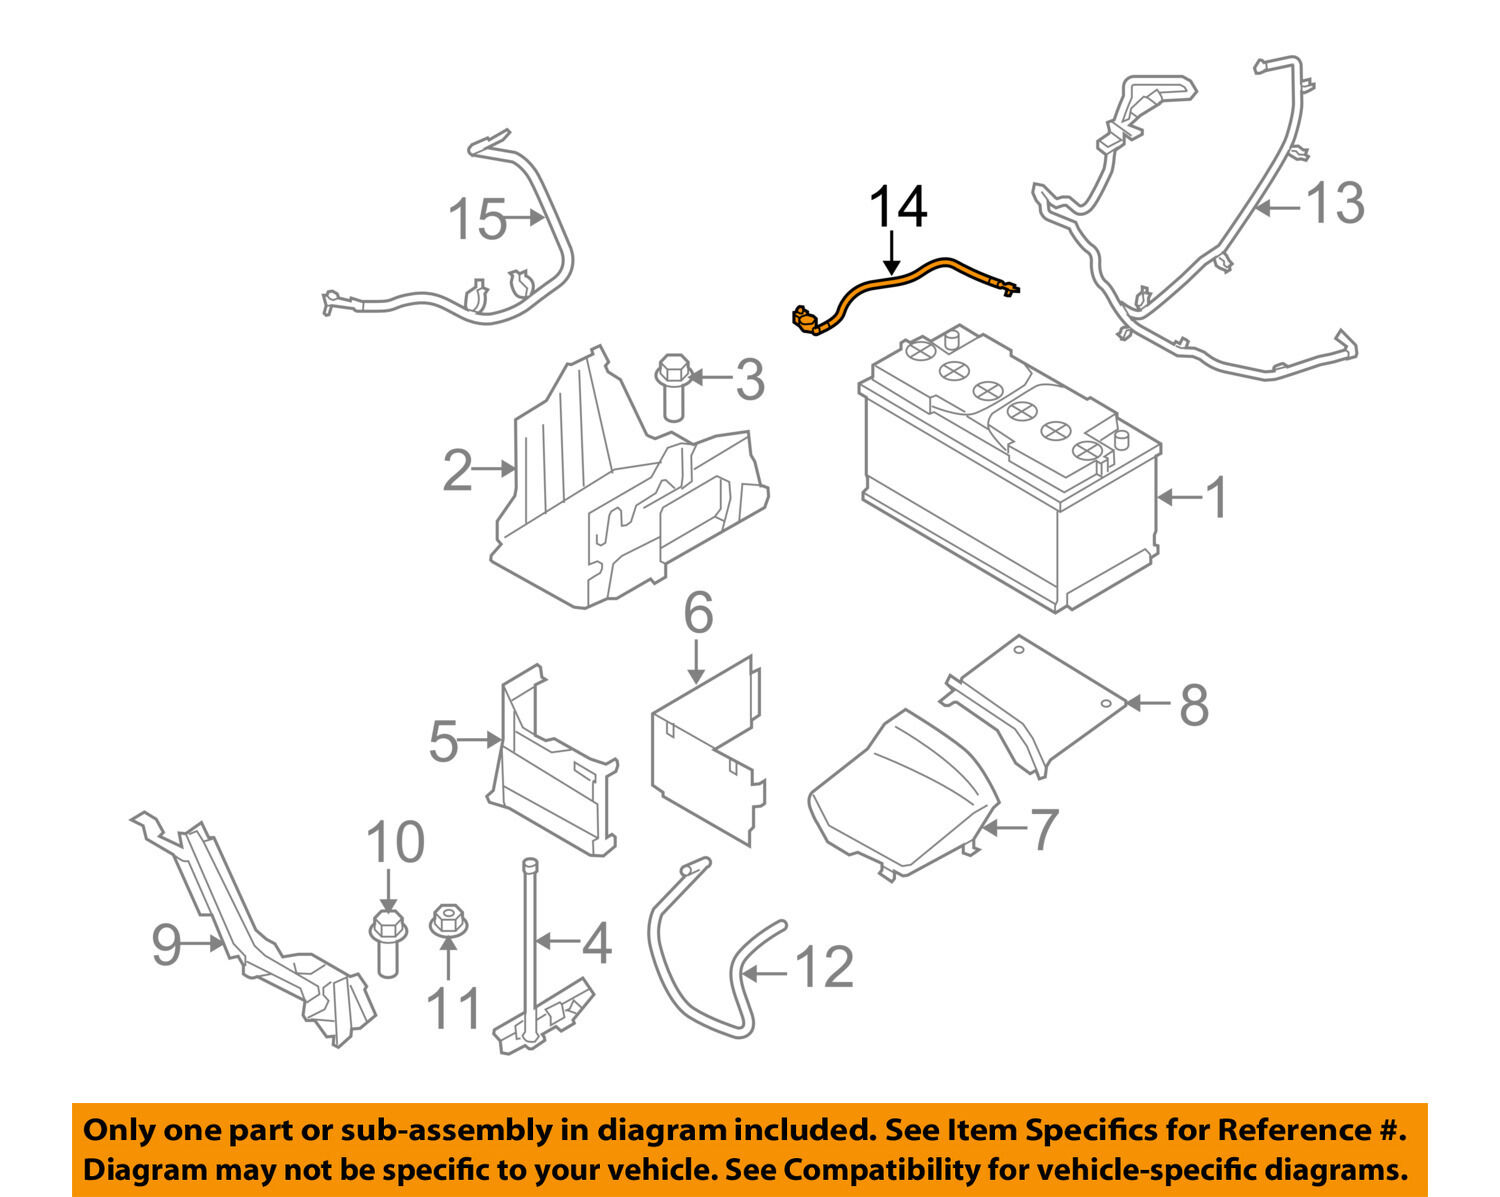 Volvo Battery Diagram Electrical Wiring Diagrams 1995 960 Oem 07 15 S80 Negative Cable 30773672 57 54 Picclick